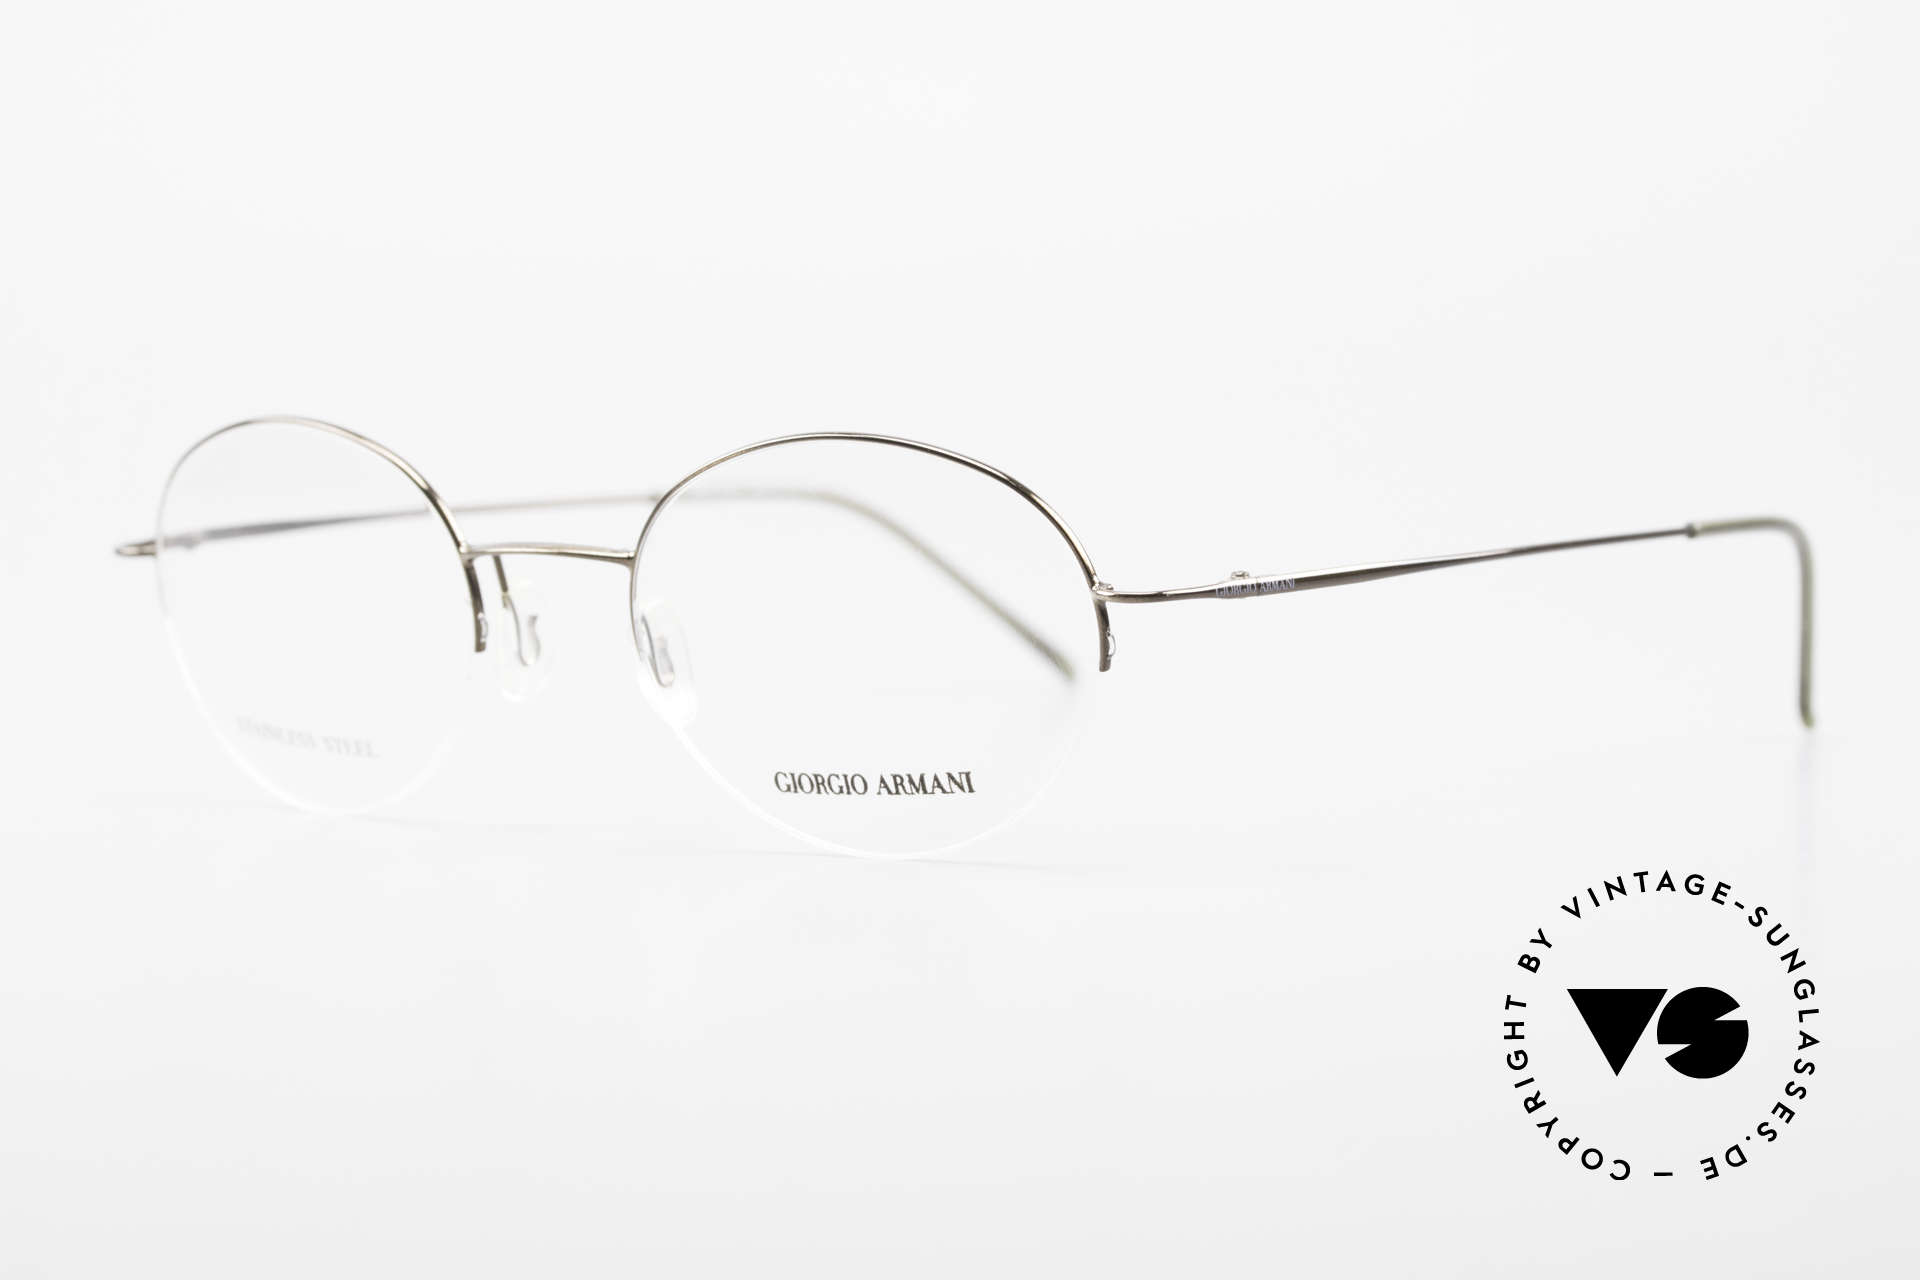 Giorgio Armani 27N Small Round Eyeglasses Nylor, very interesting frame finish in TAUPE METALLIC, Made for Men and Women